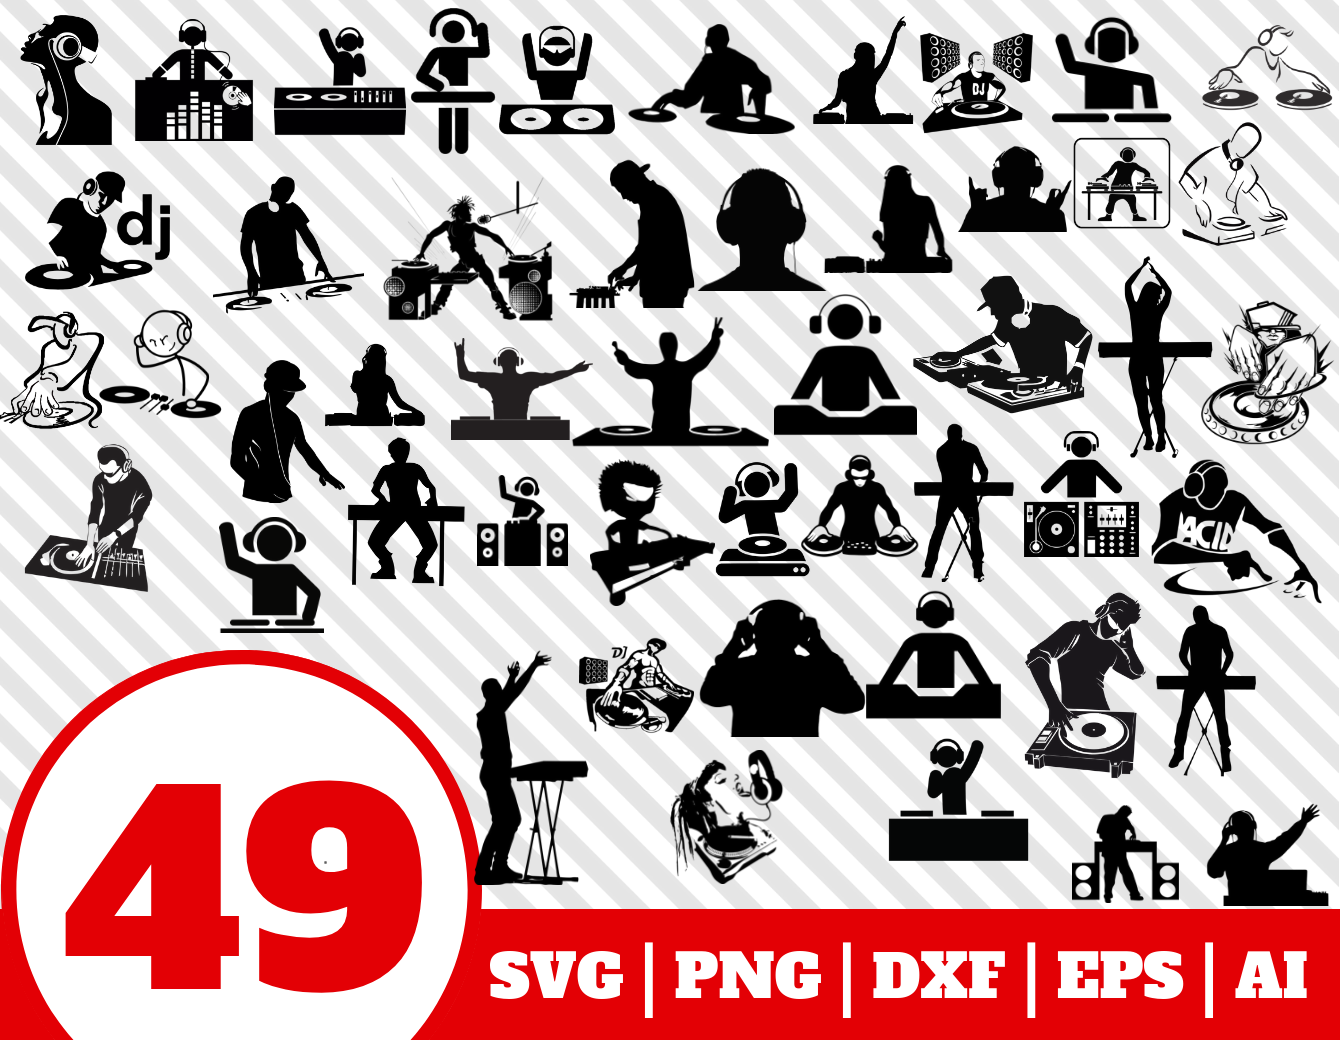 49 DJ SVG BUNDLE.